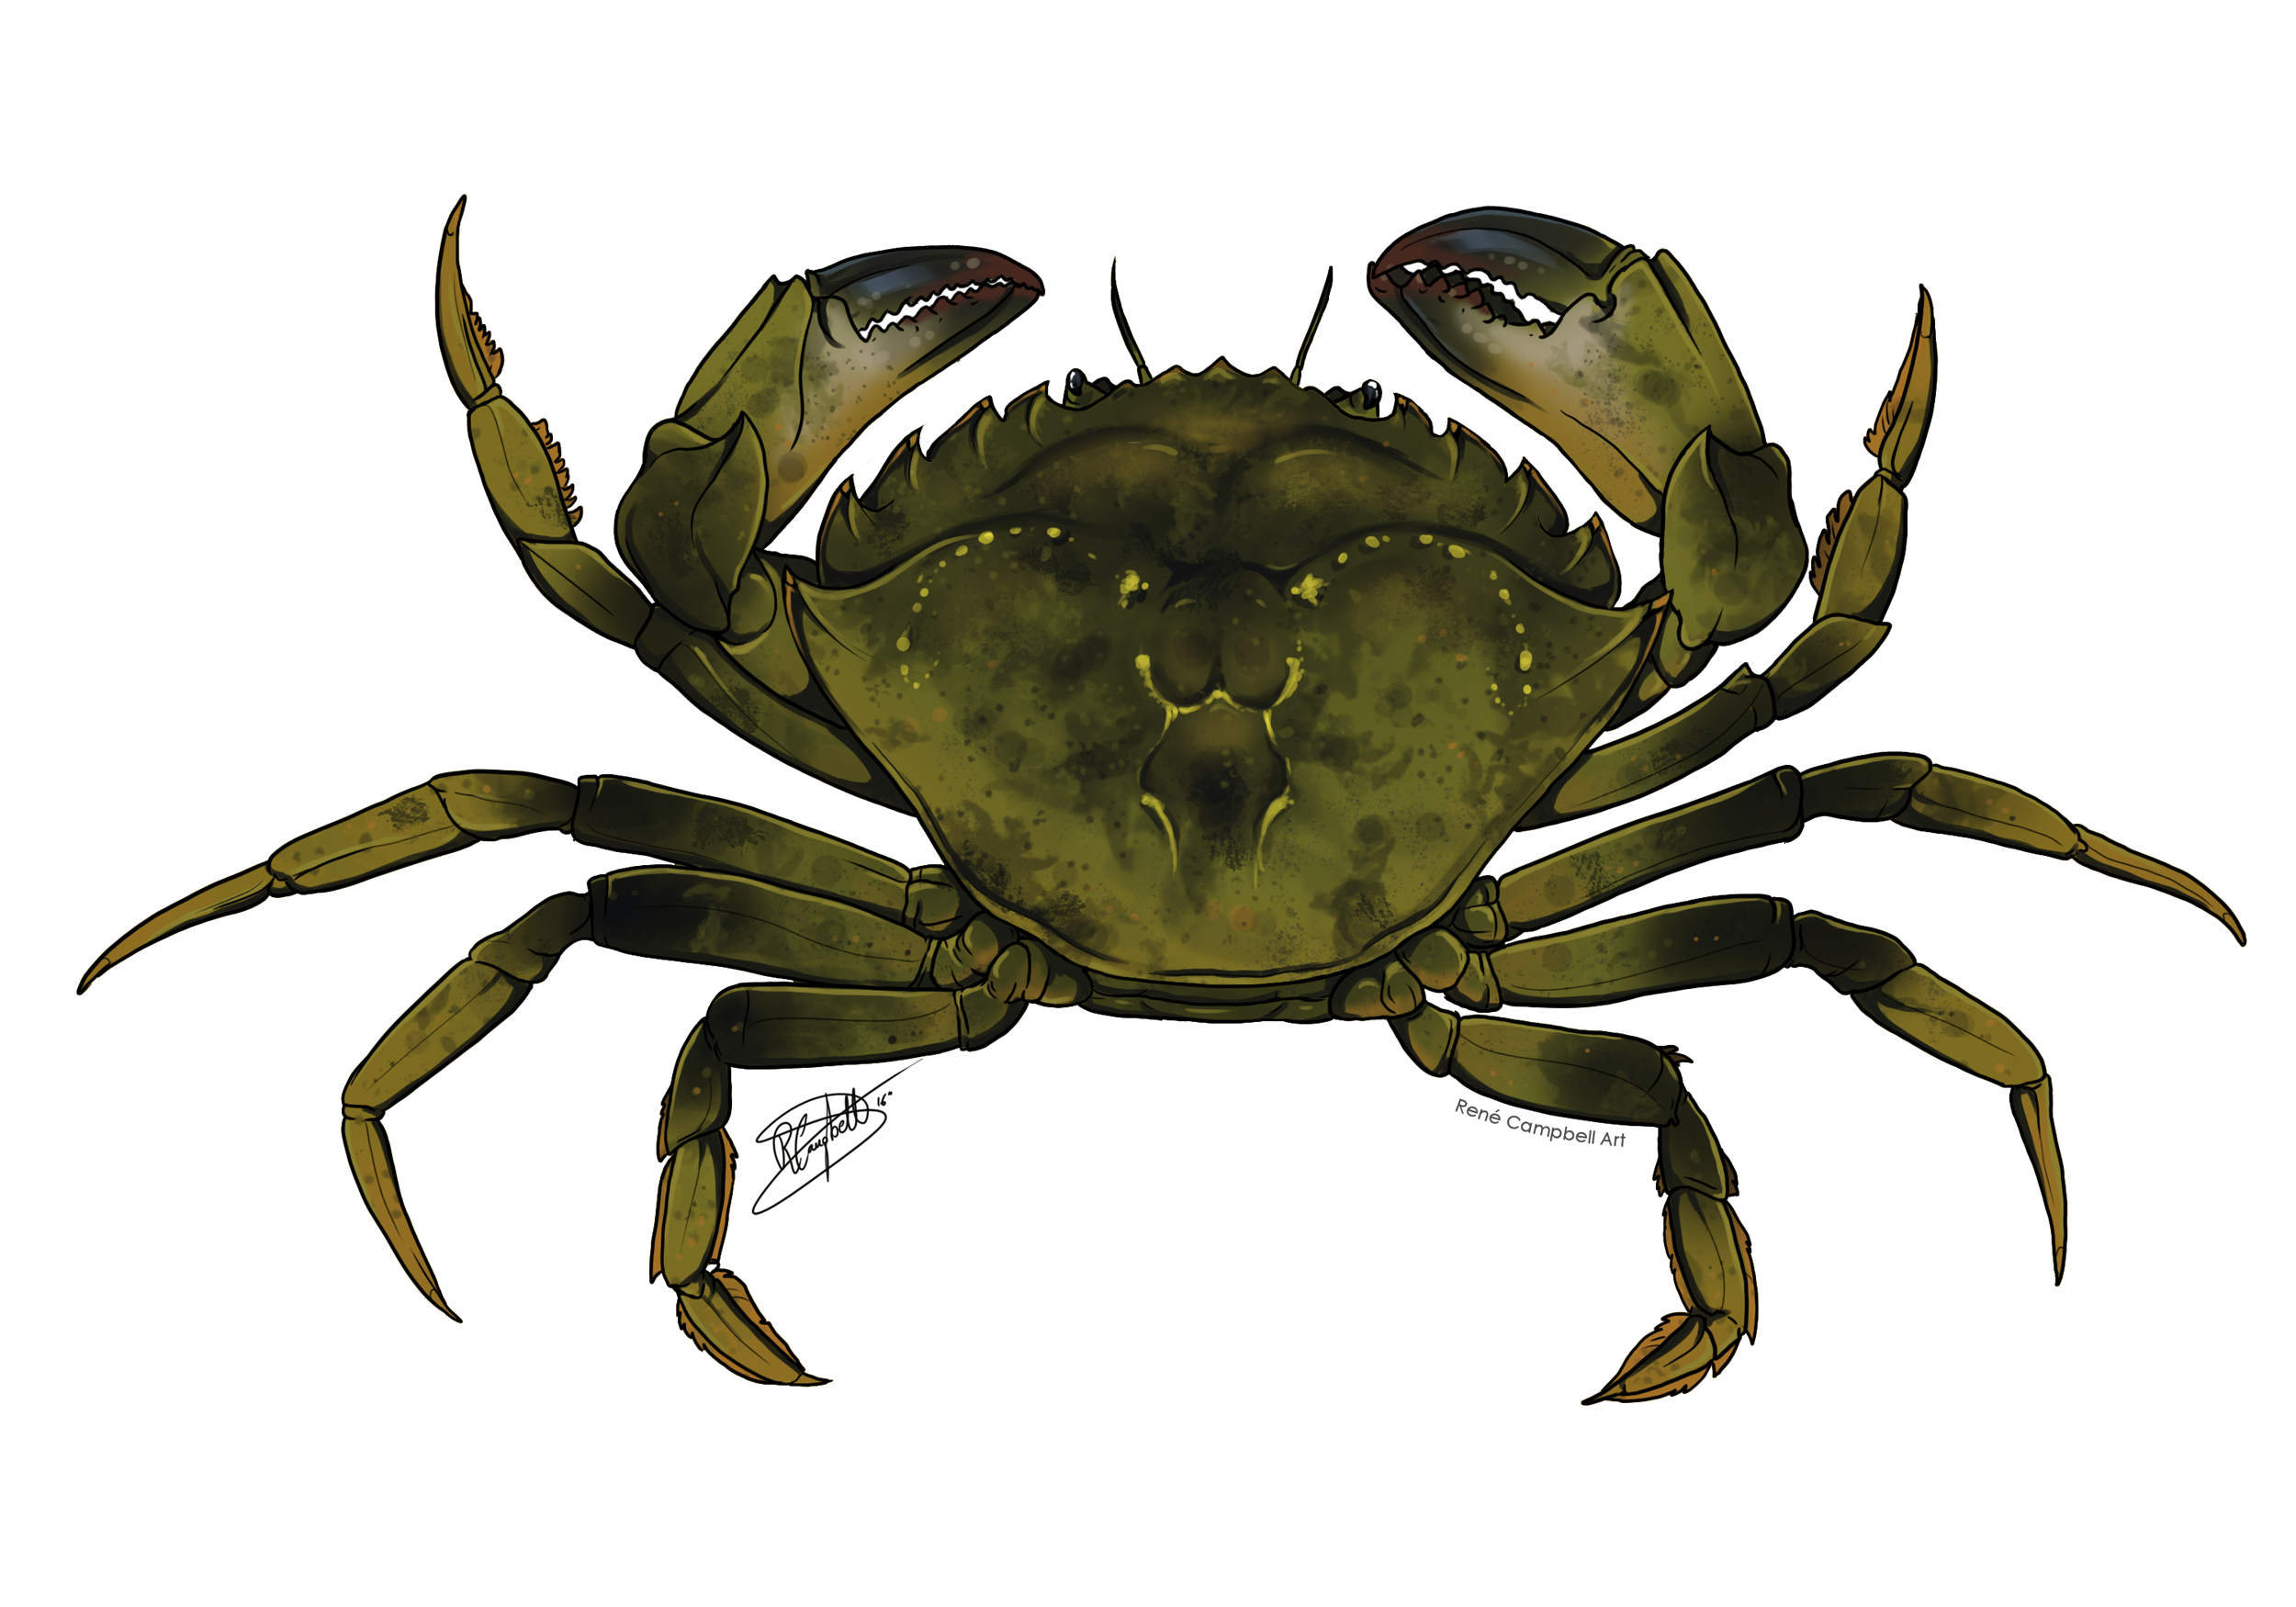 Maryland Blue Crab Regulations